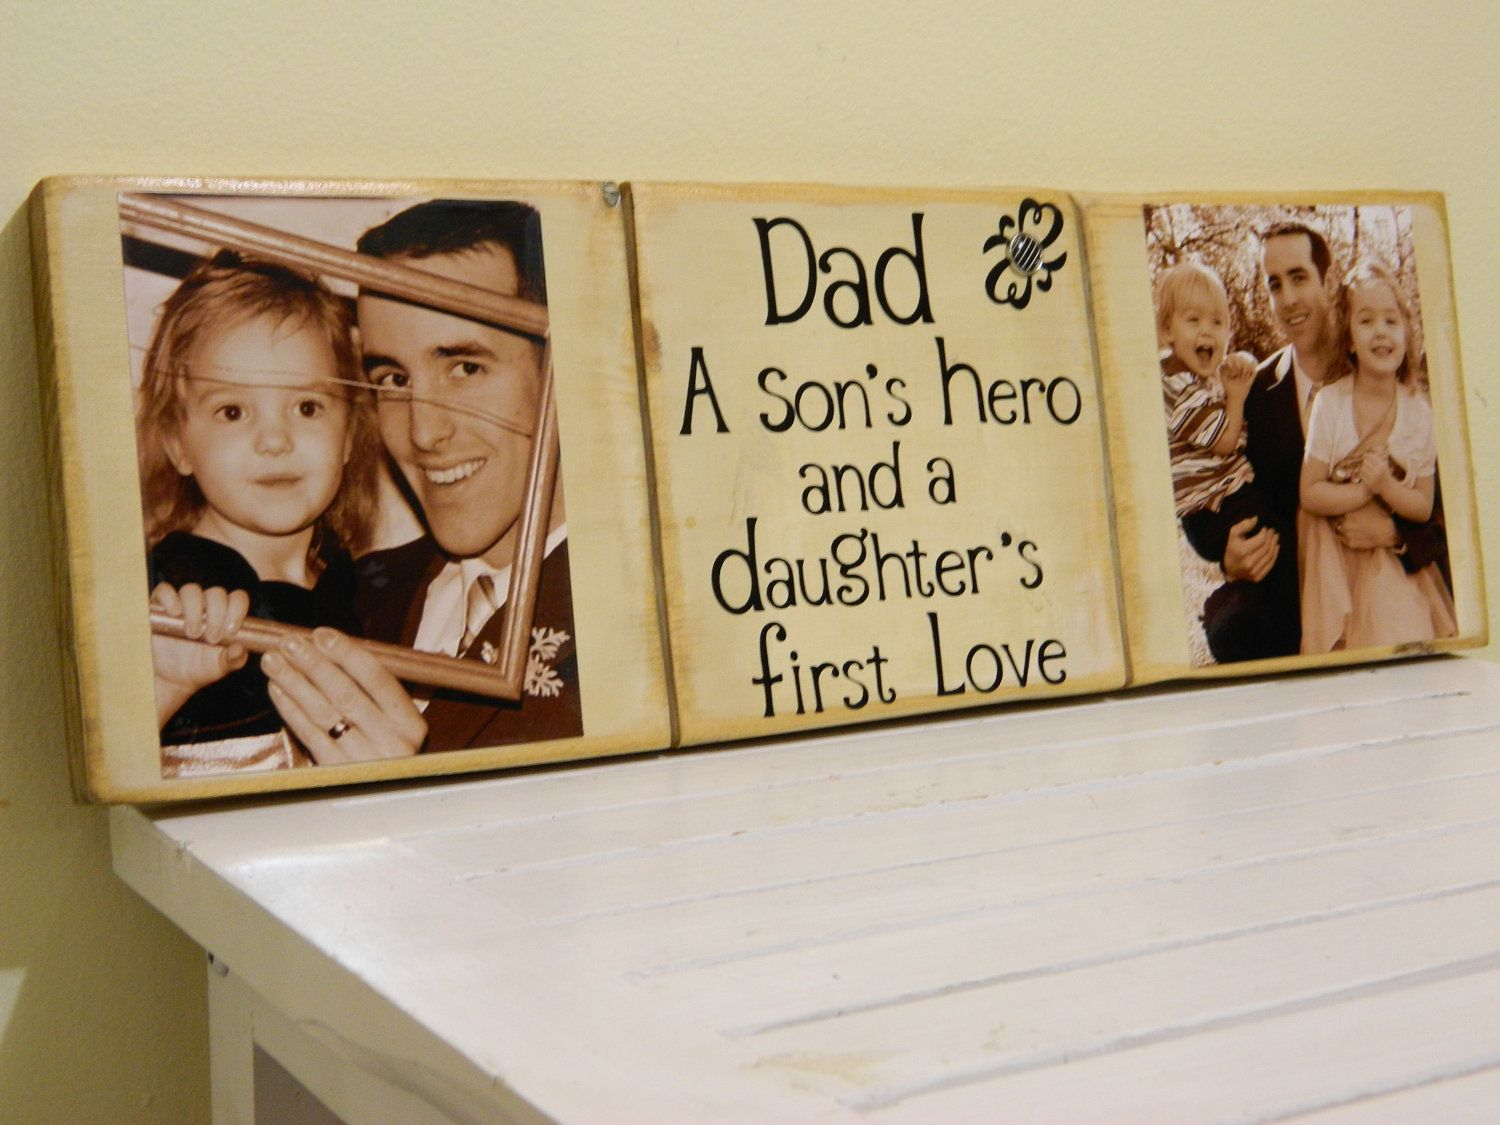 8695fed46883 Personalized Fathers day gift Dad a sons hero and a daughters first love  wooden sign Last day to order for Fathers day is June 6.  23.00